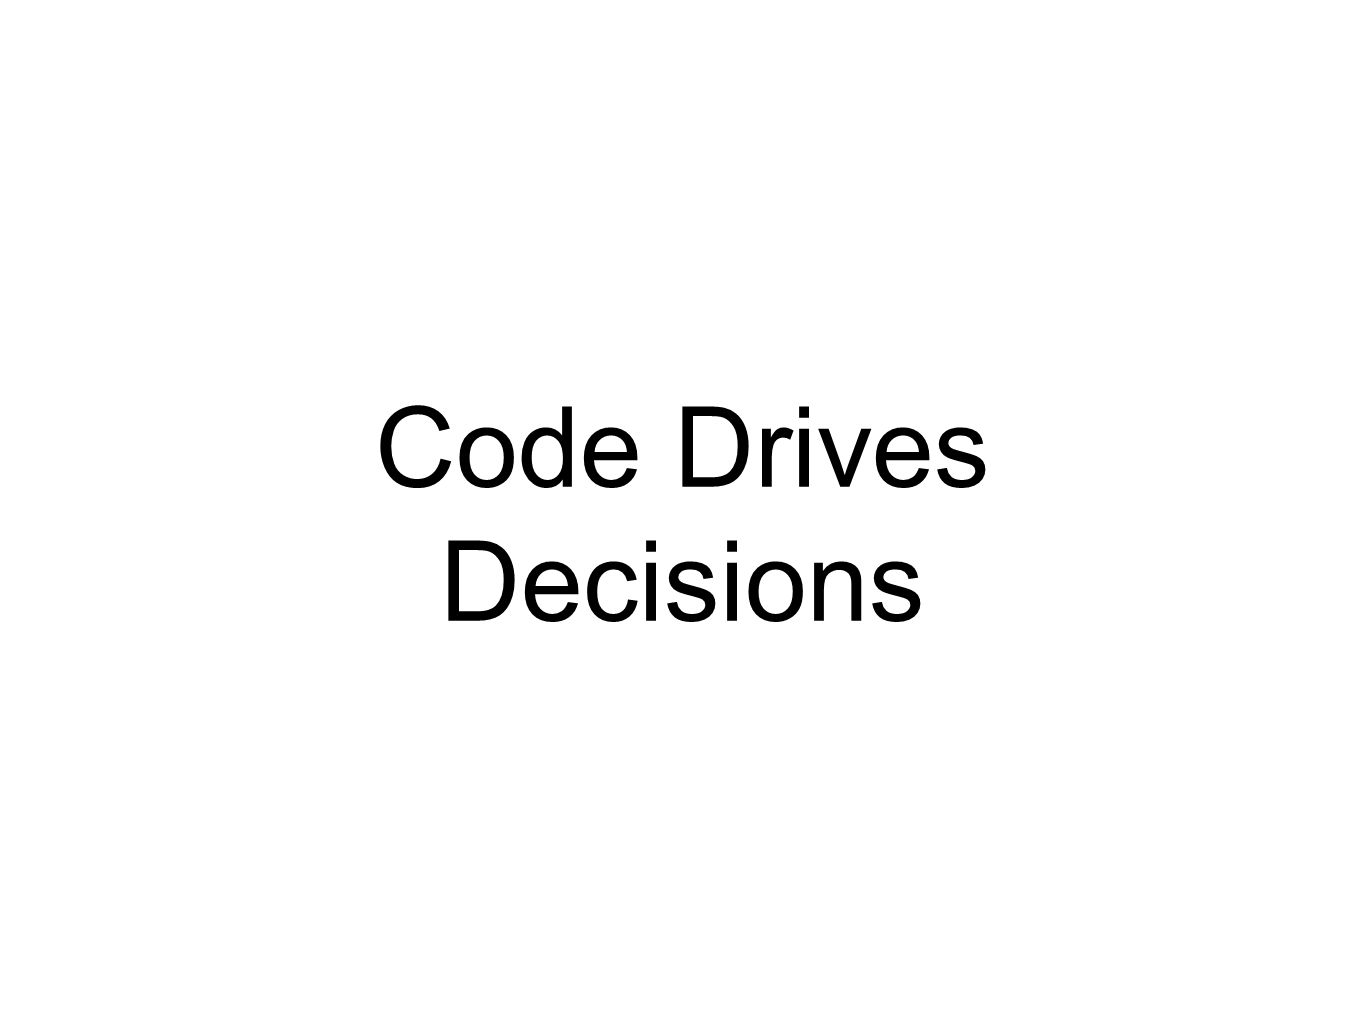 Code Drives Decisions